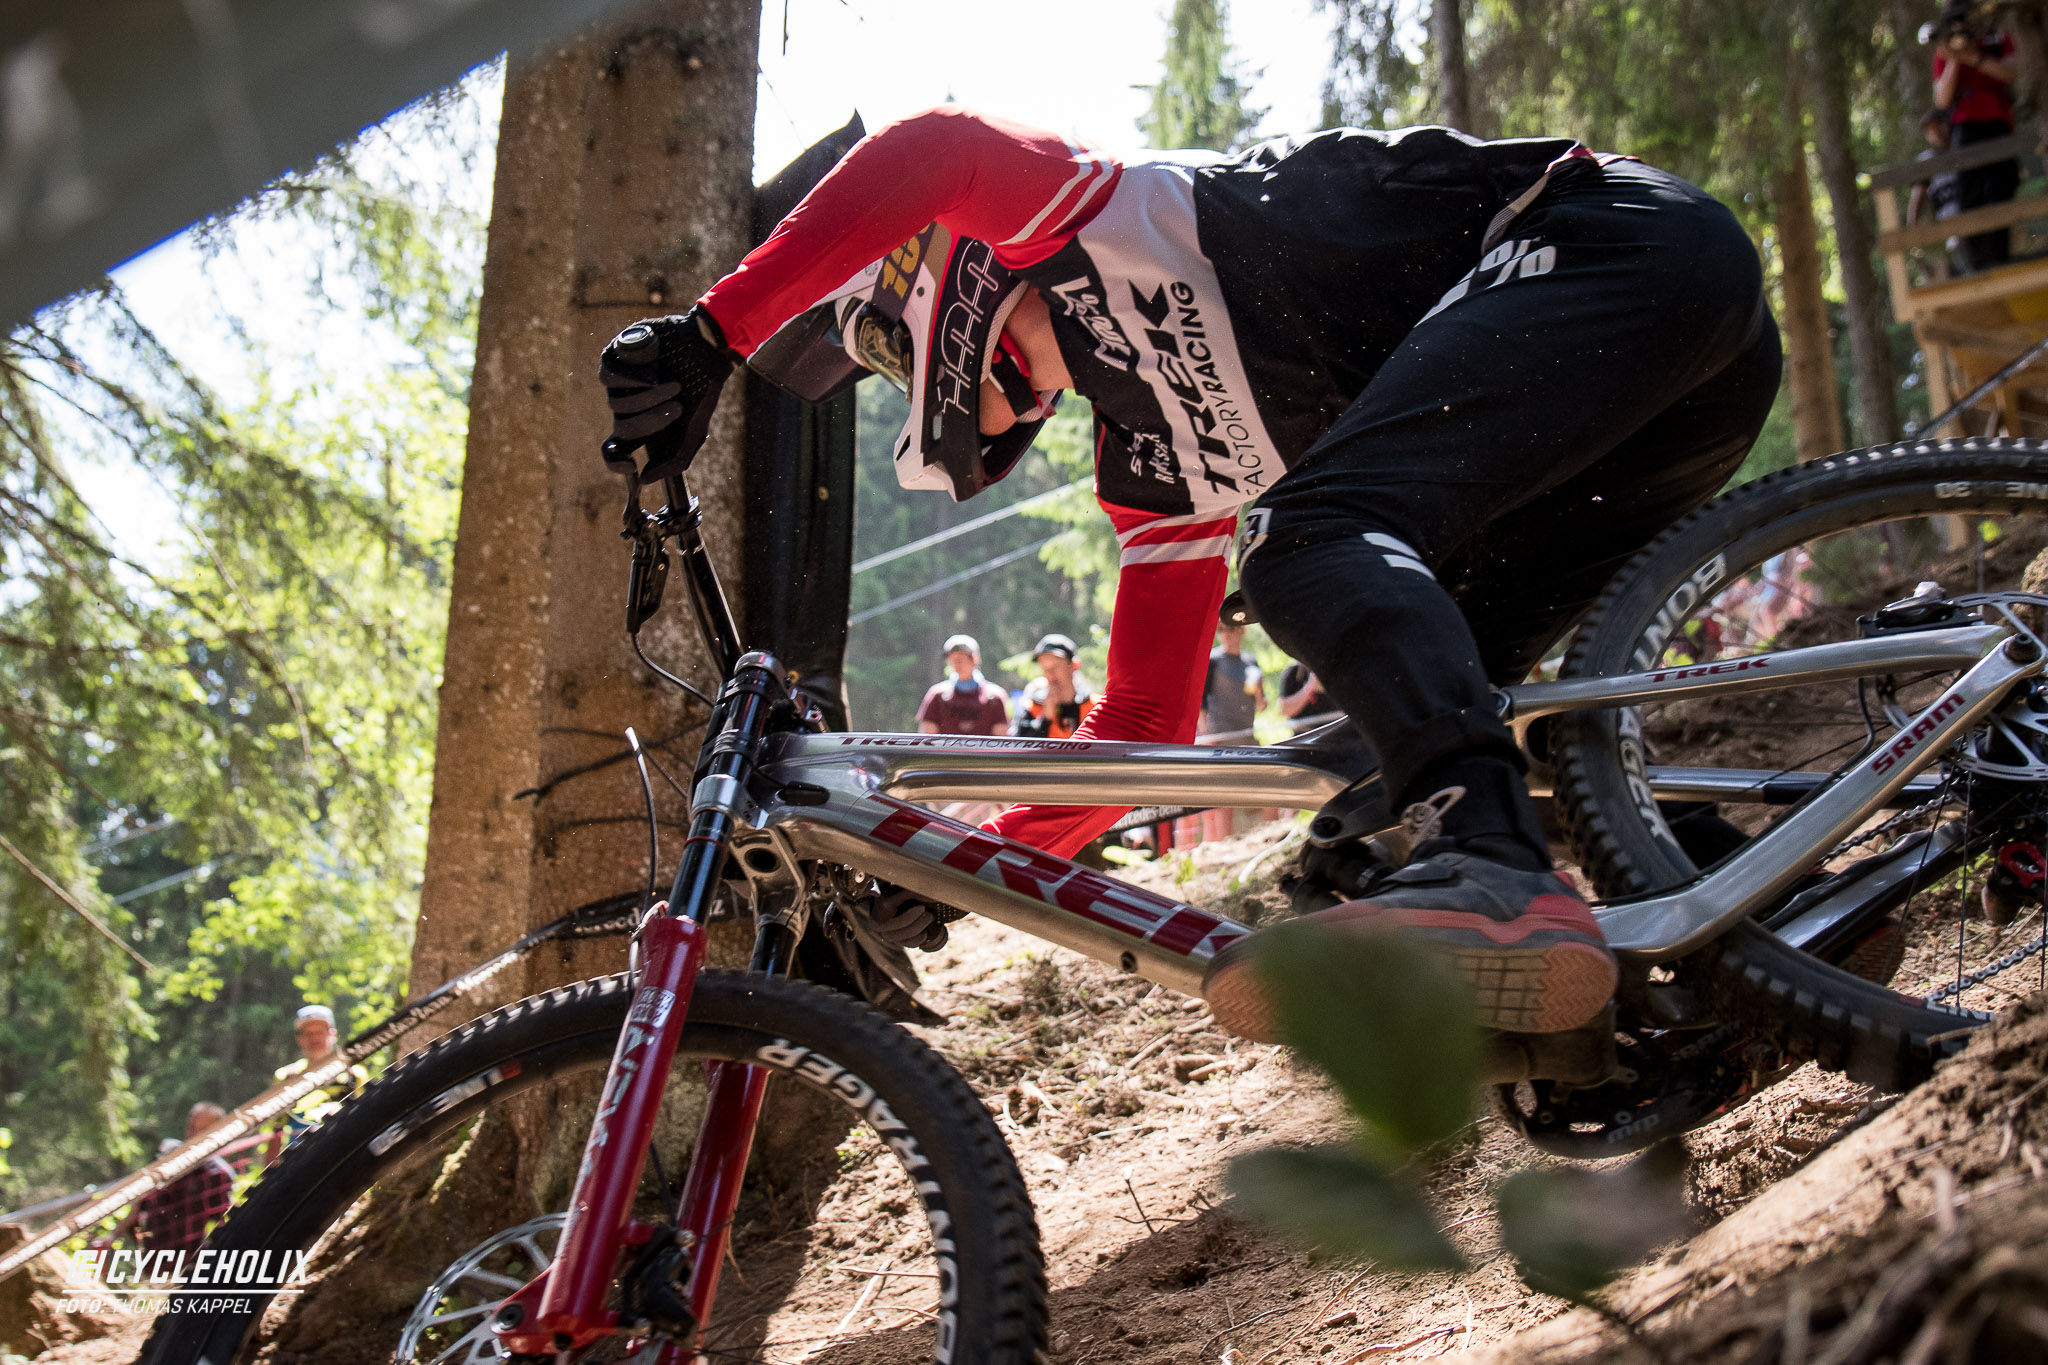 2019 Downhill Worldcup Leogang Finale Action 10